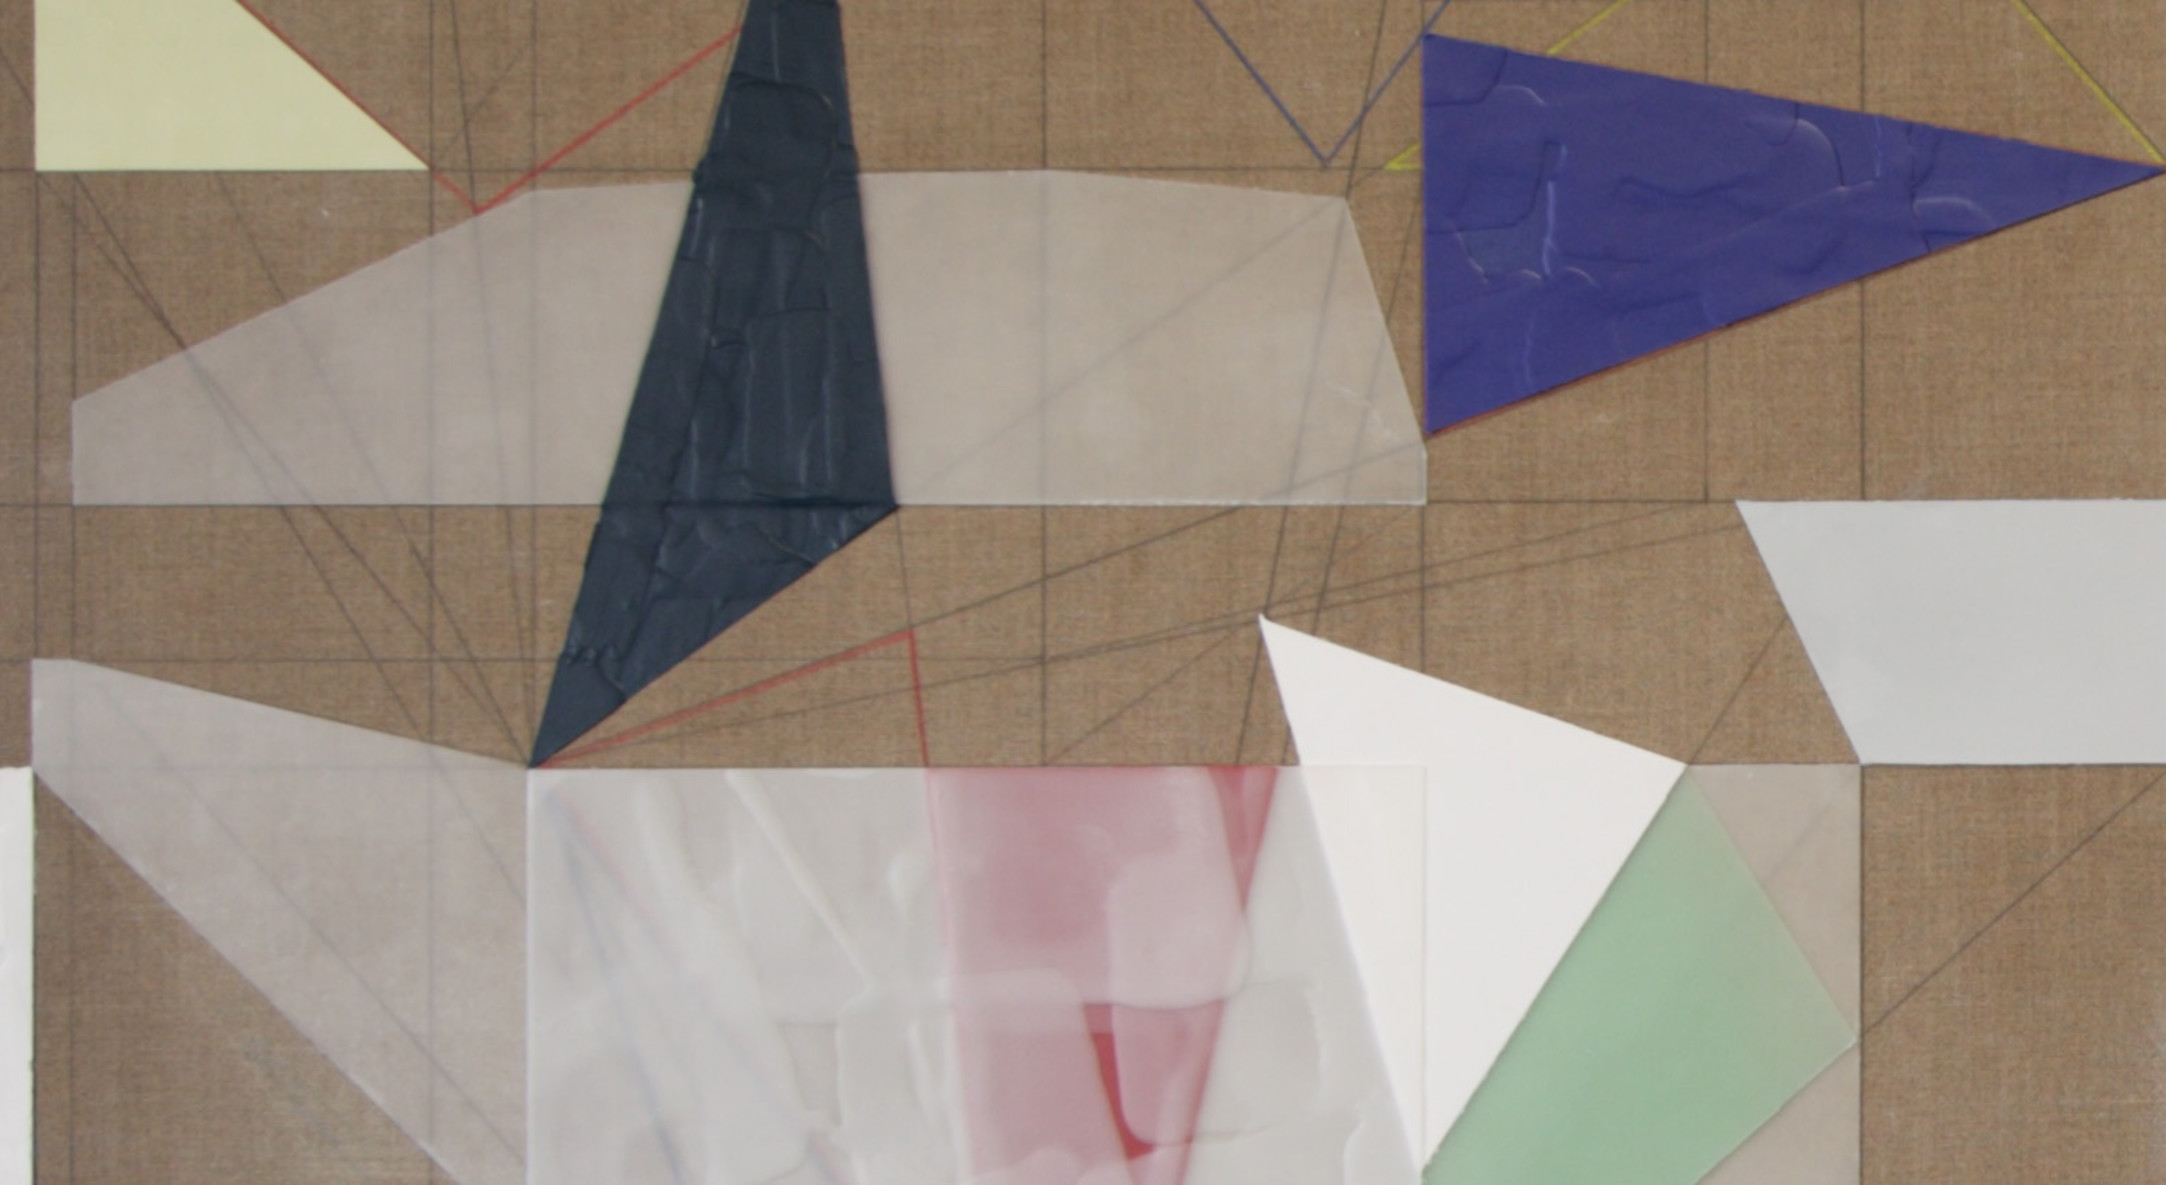 Detail of Andrew Bick, OGV [Mirror/Shift] (small version), 2010, Oil, marker pen, watercolour, and wax on wood, Each: 76.8 x 63.5 cm, 30 1/4 x 25 in